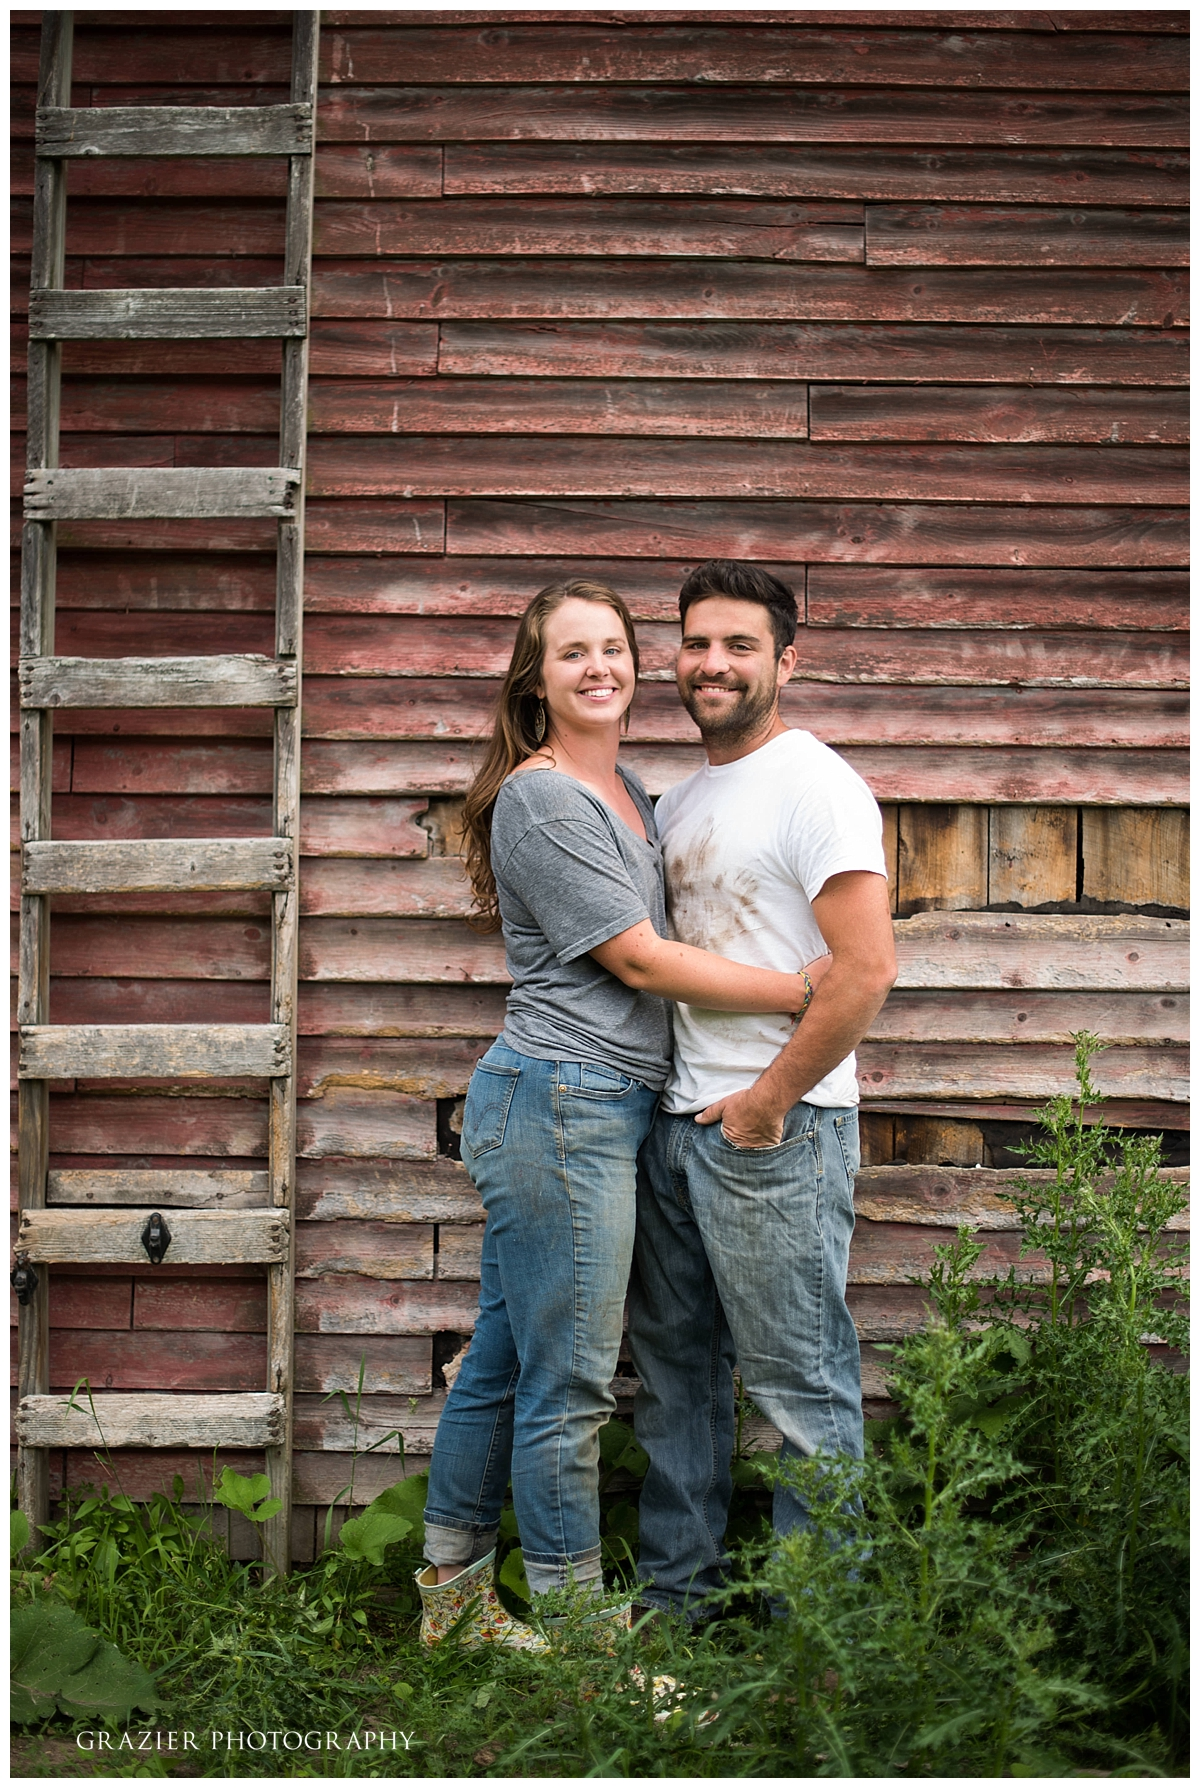 Farm Engagement Grazier Photography 2017-3_WEB.jpg